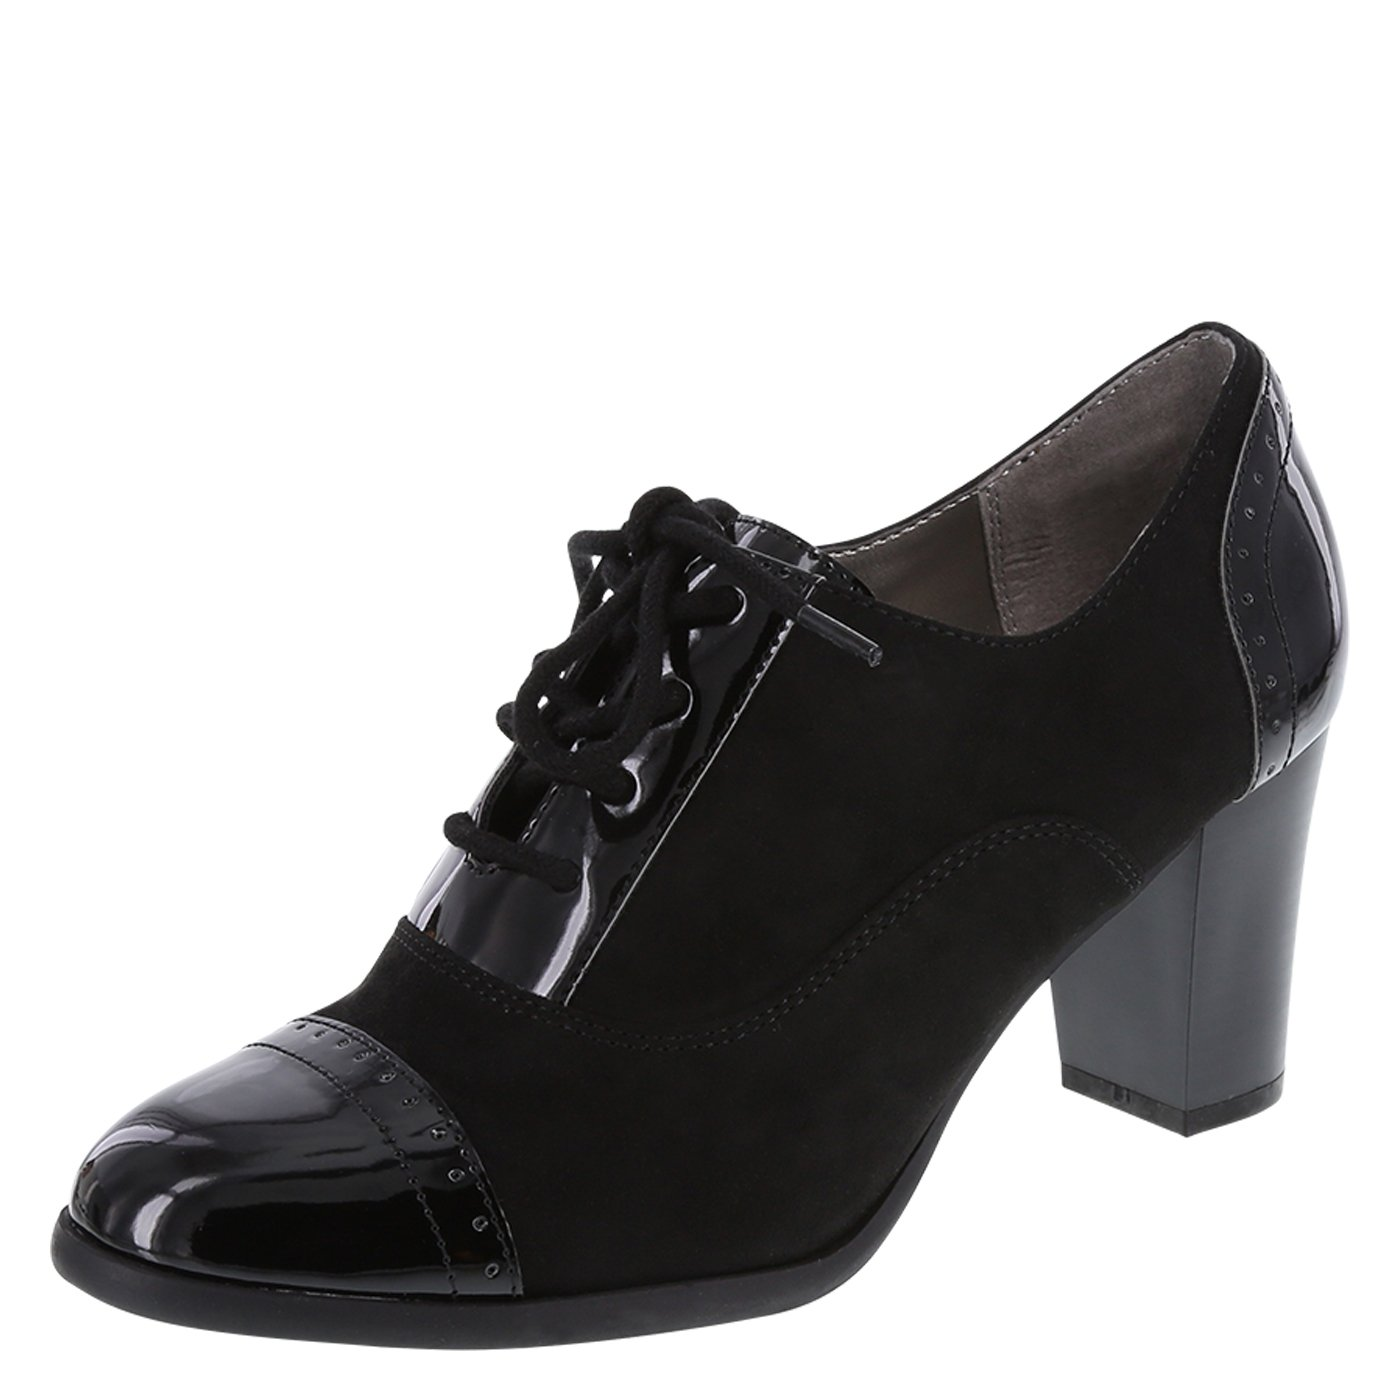 dexflex Comfort Women's Black Kara Oxford Pump 6.5 Regular